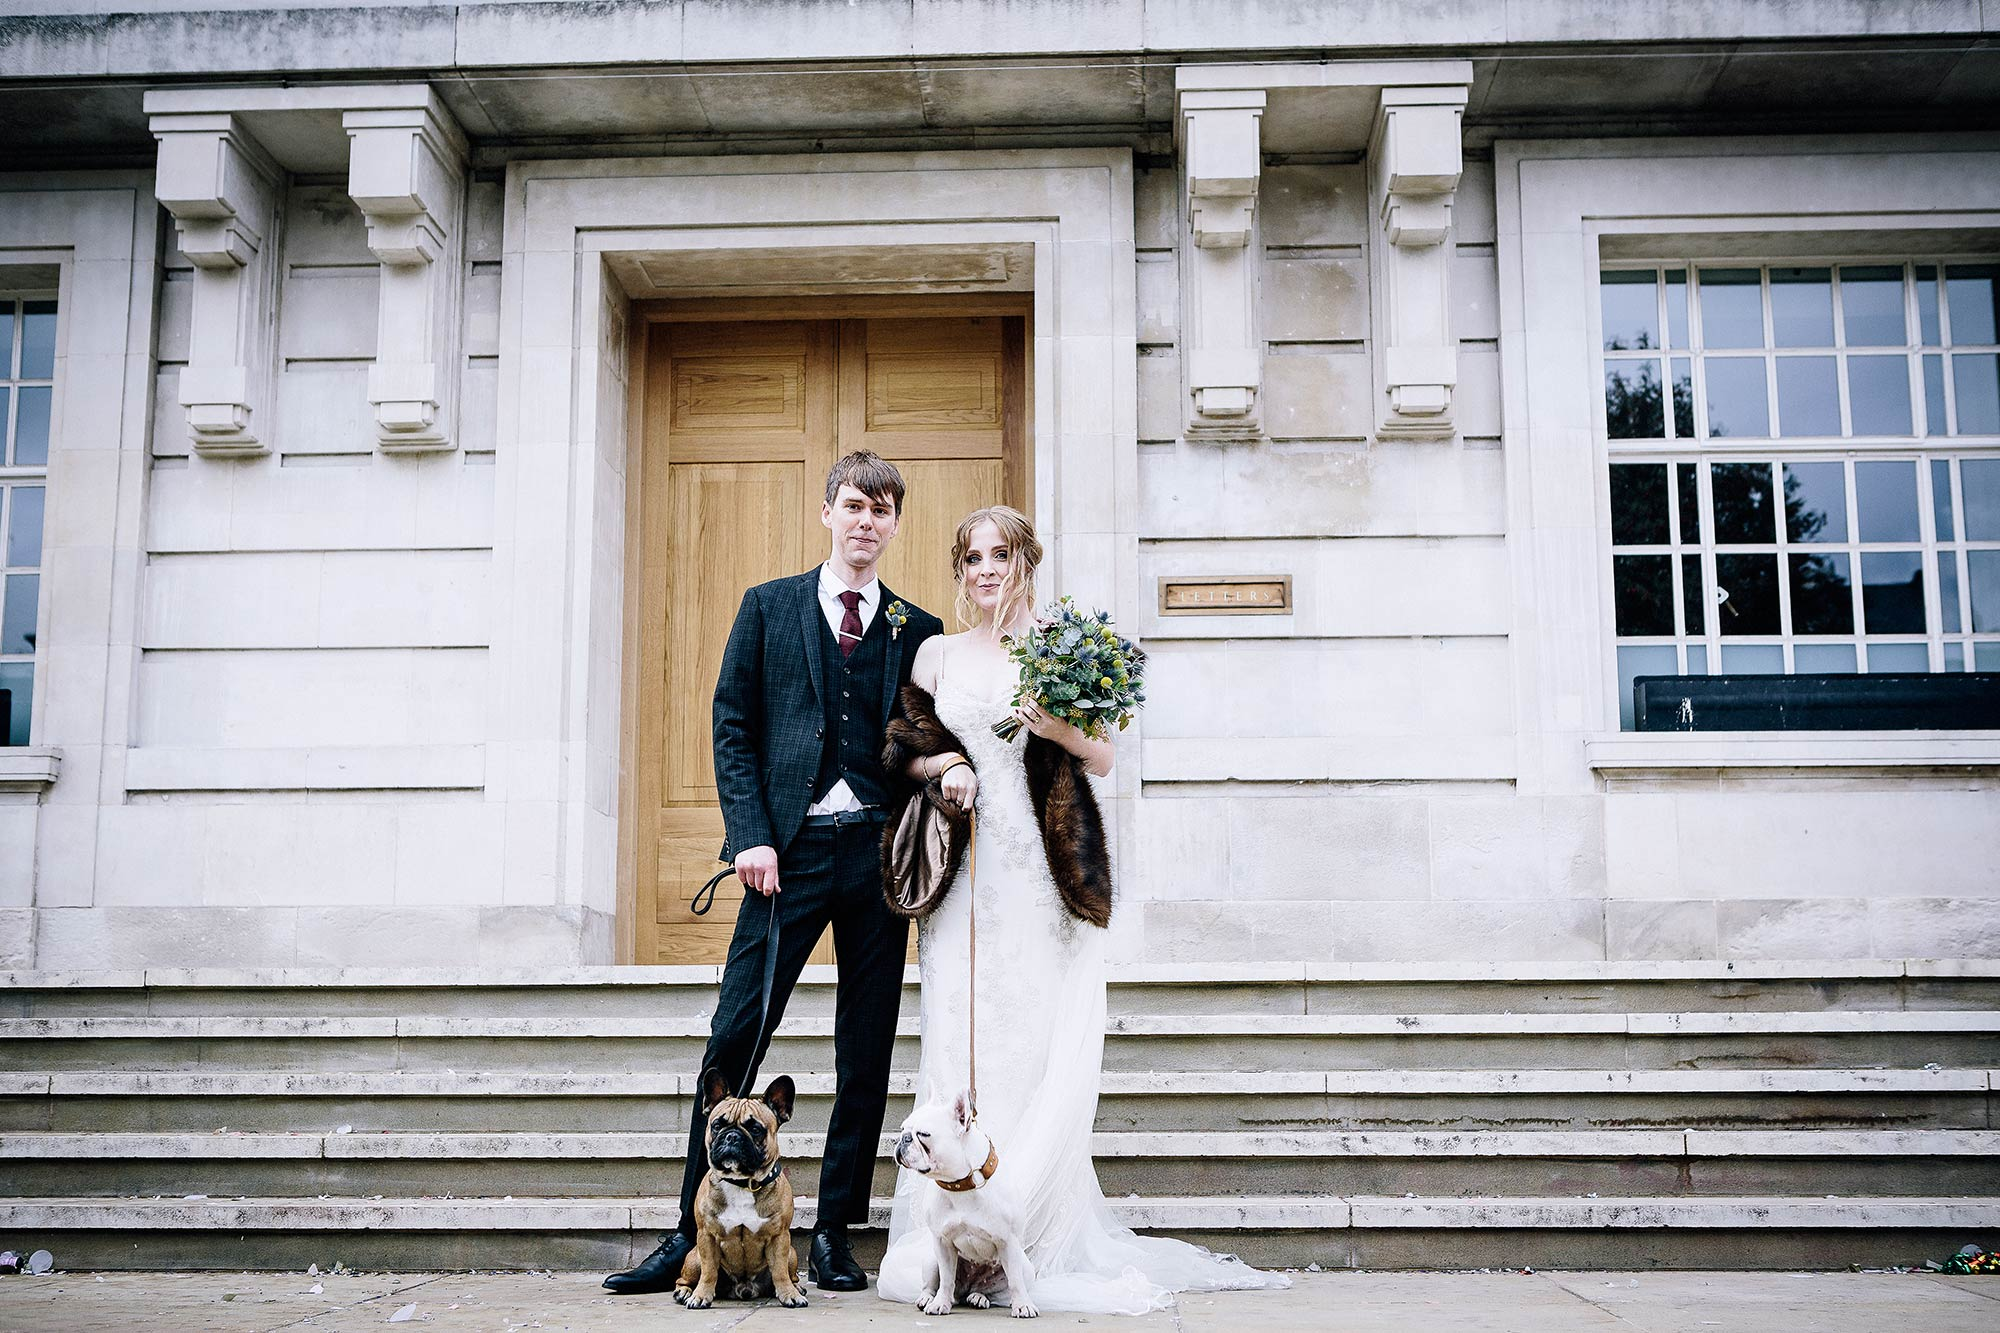 Else and Peter's wedding at Hackney Town Hall